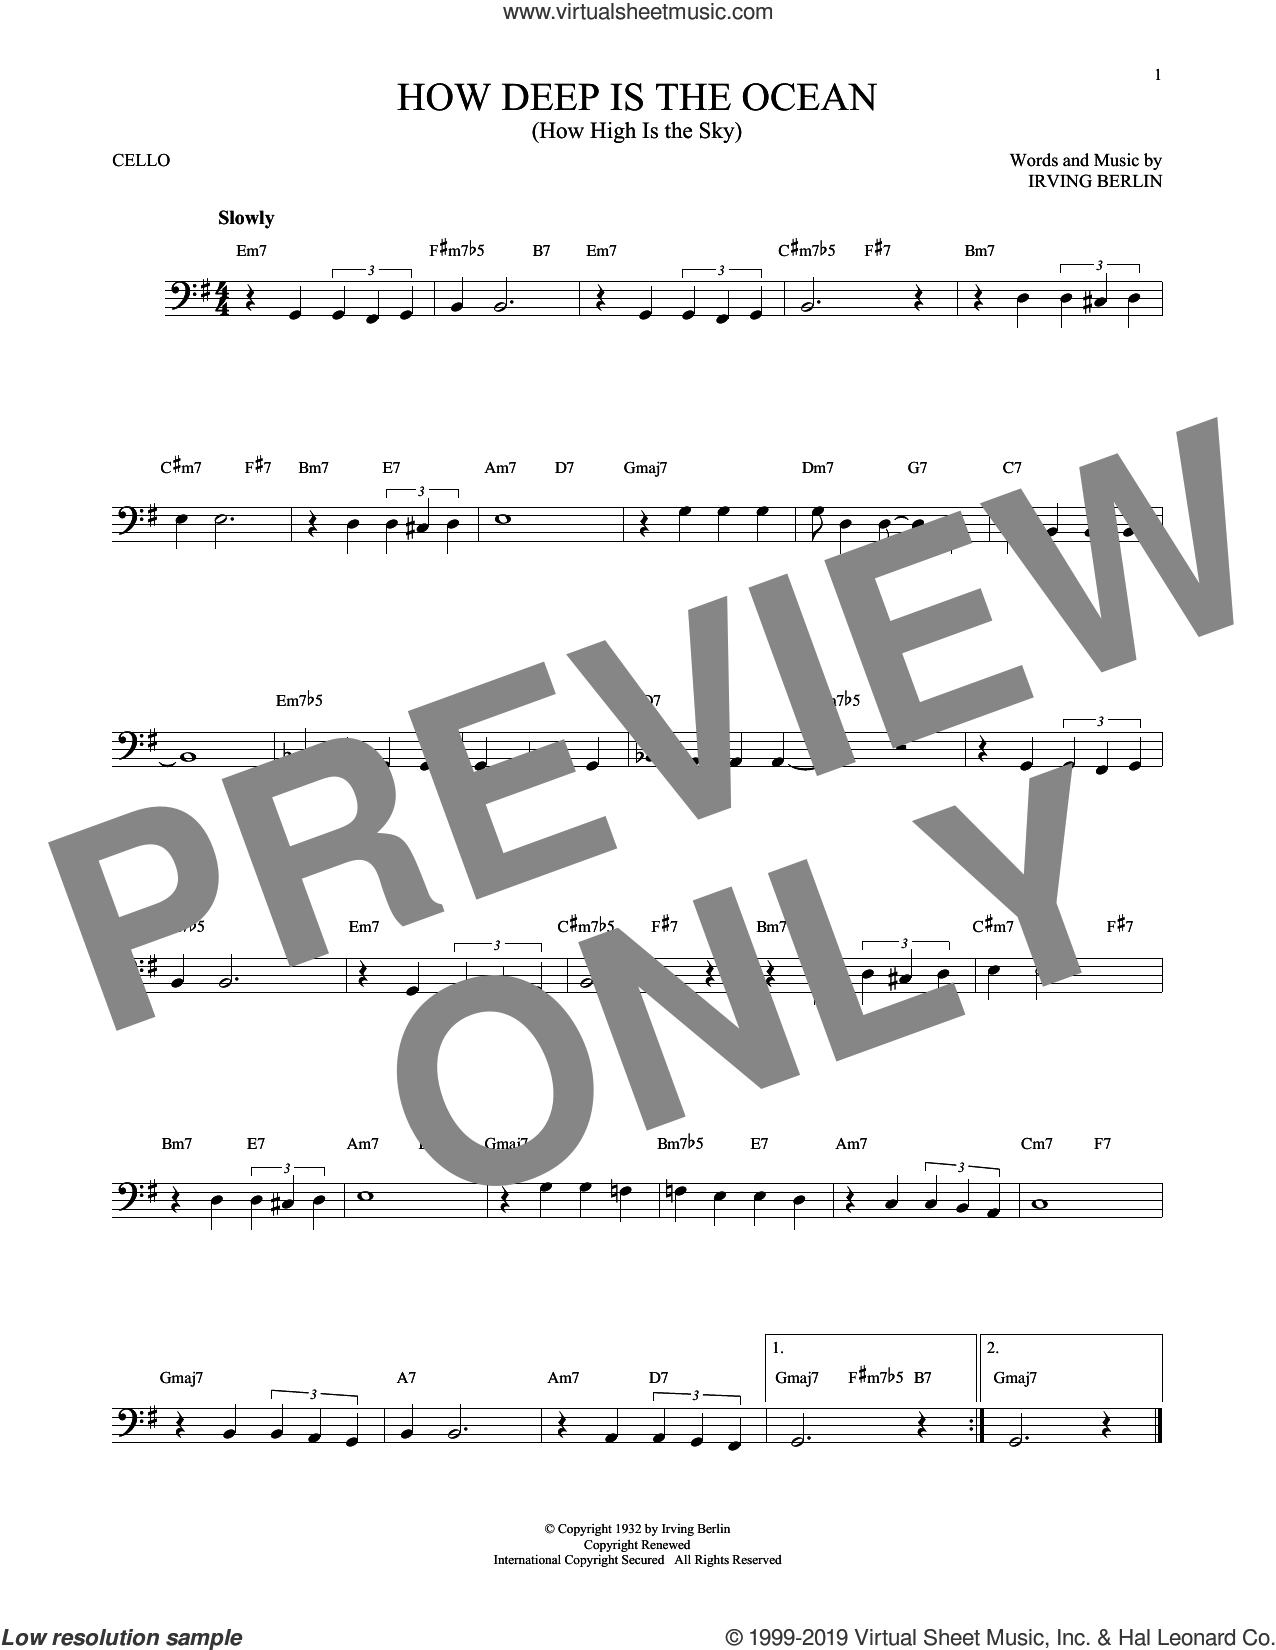 How Deep Is The Ocean (How High Is The Sky) sheet music for cello solo by Irving Berlin and Ben Webster, intermediate skill level